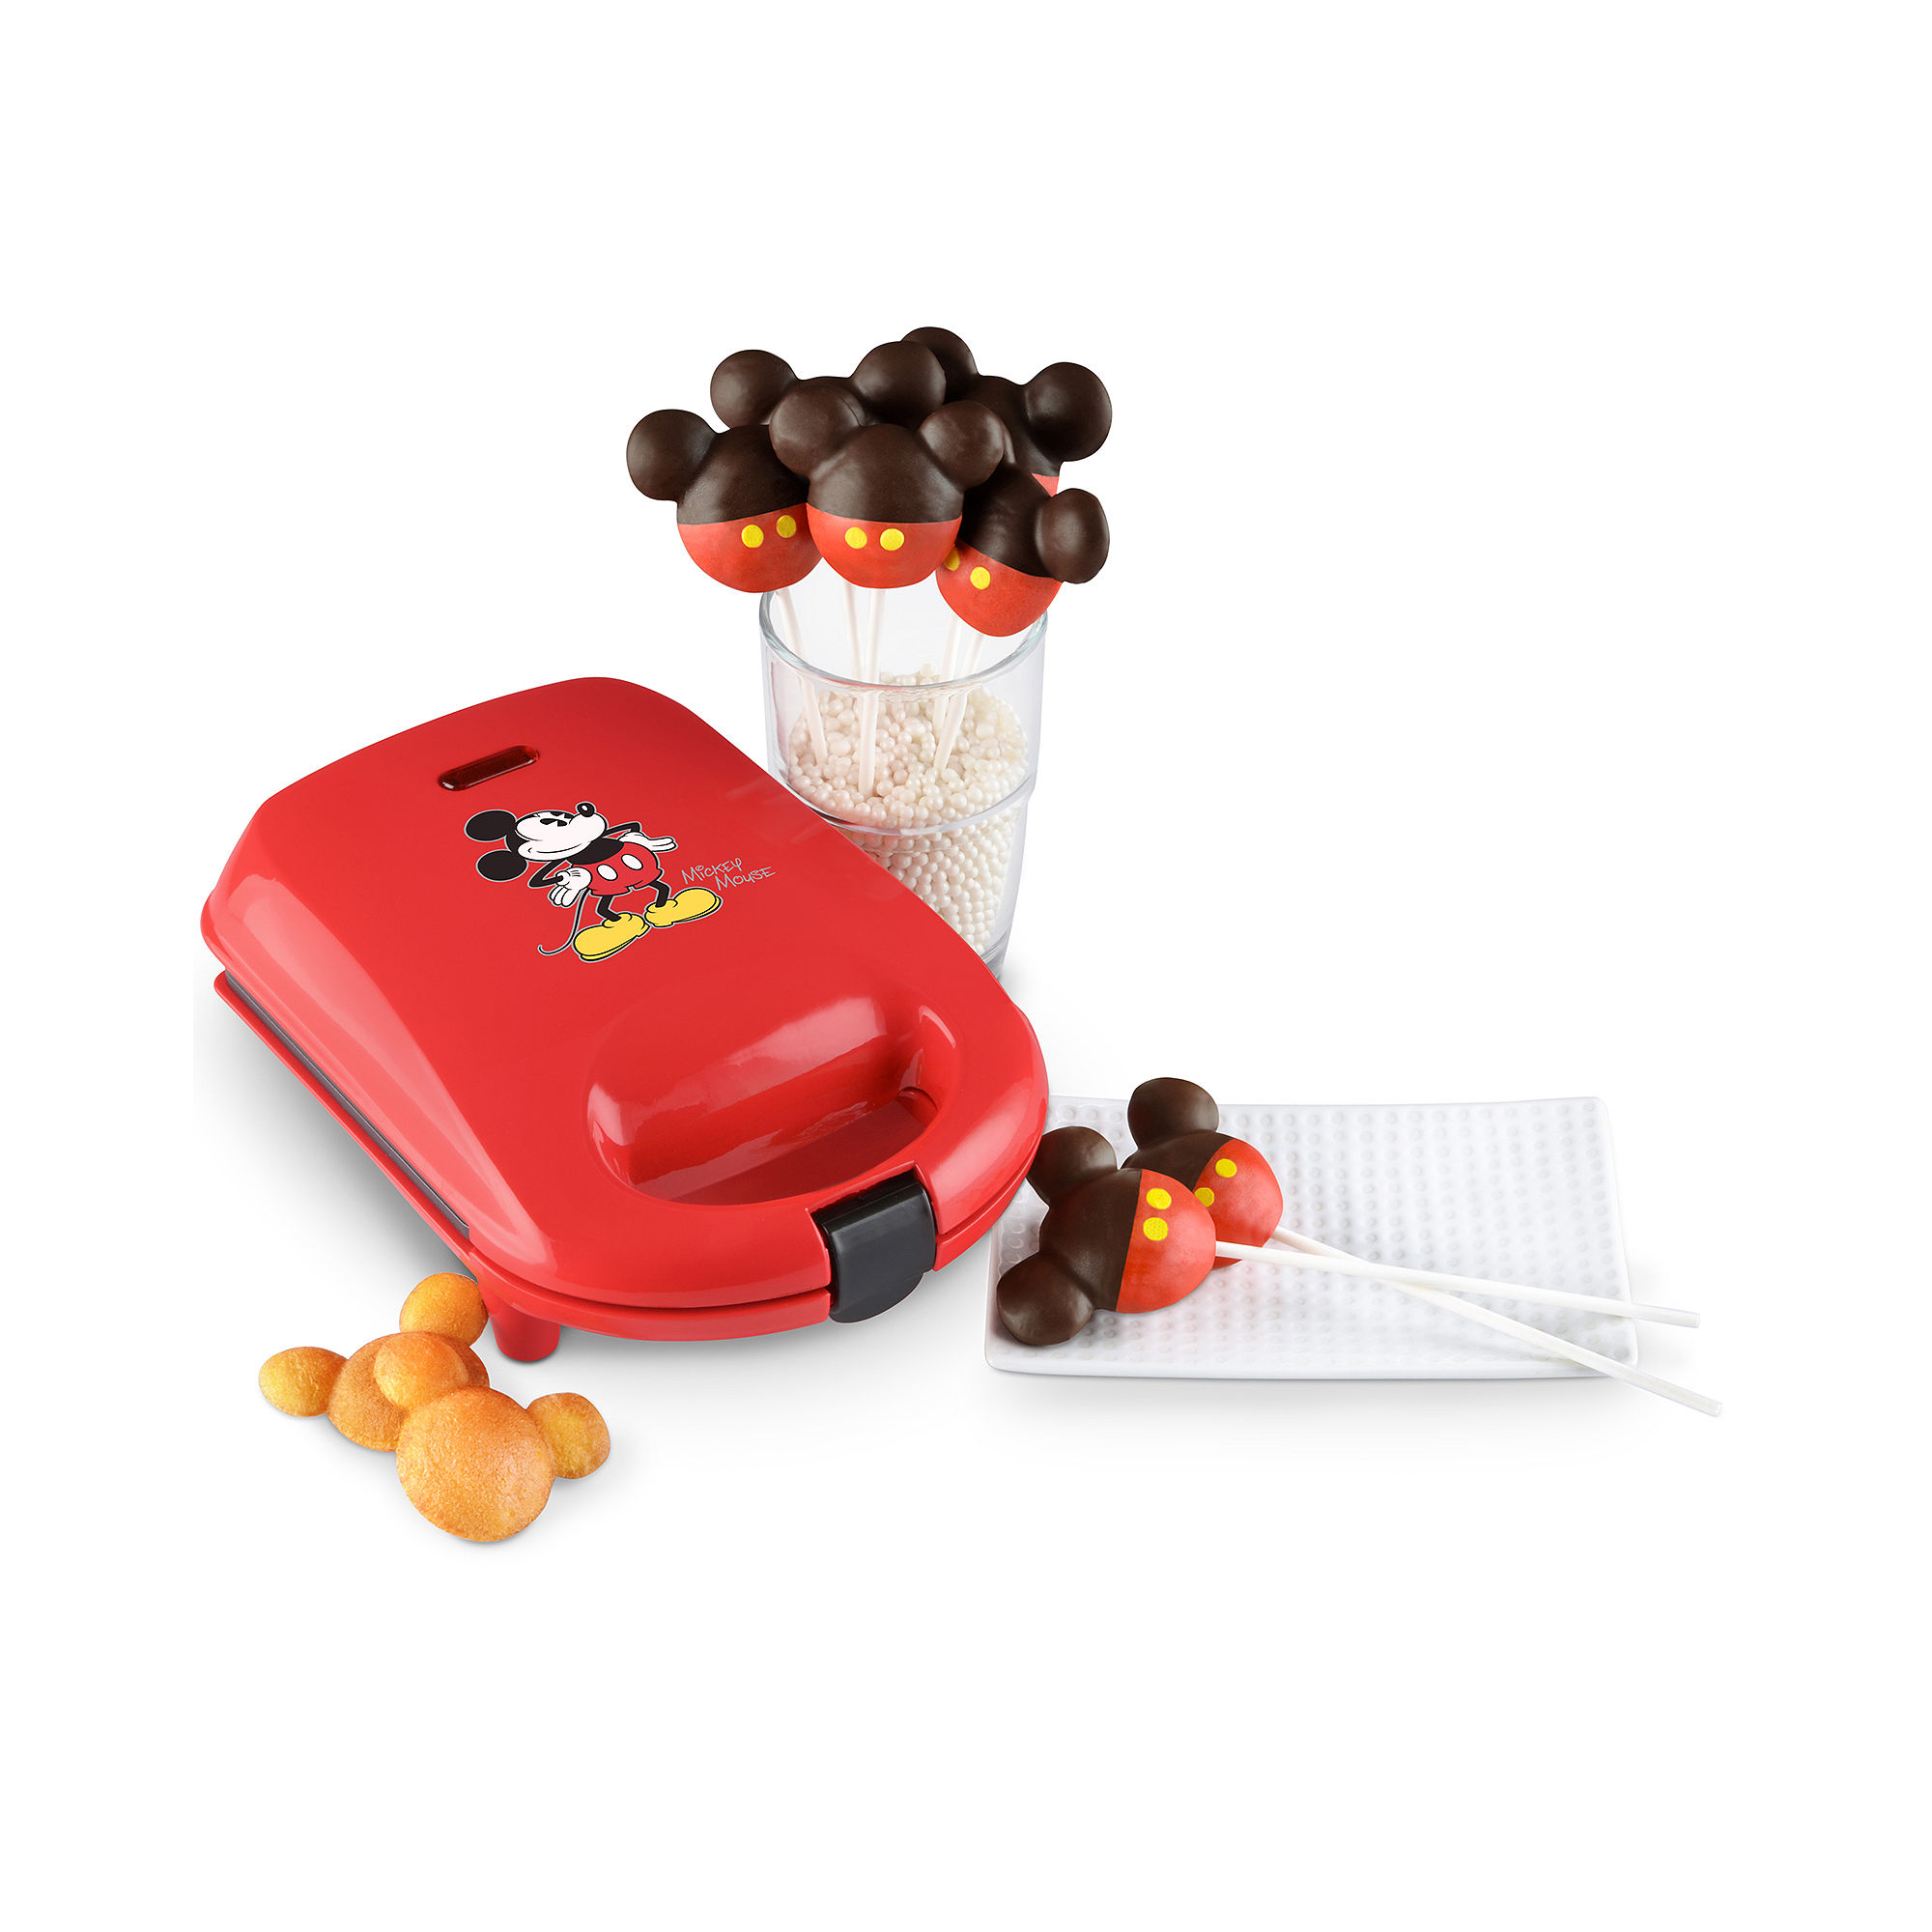 Uncategorized Disney Kitchen Appliances upc 655772013071 disney classic mickey mouse mini cake pop maker product image for disneys upcitemdb com